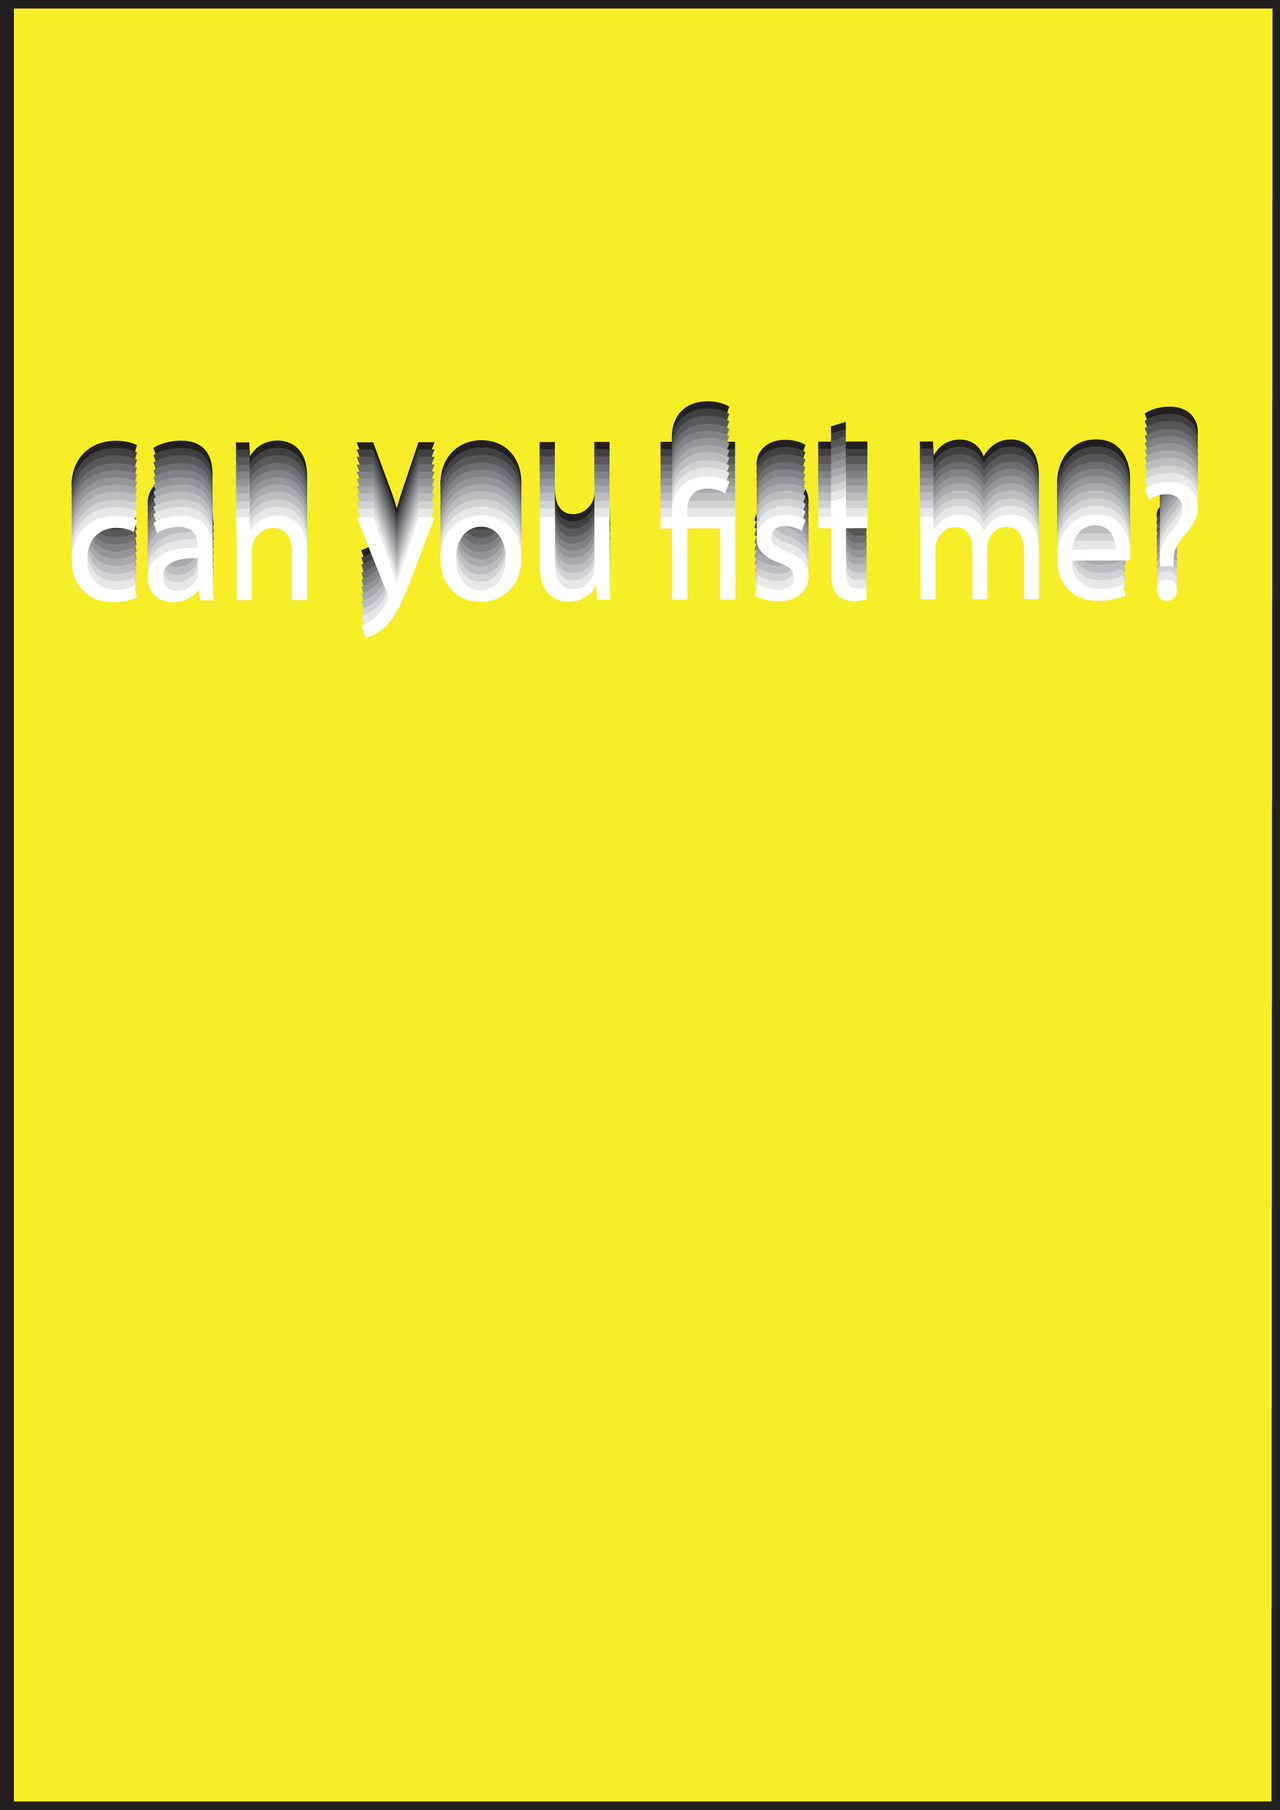 can you fist me?